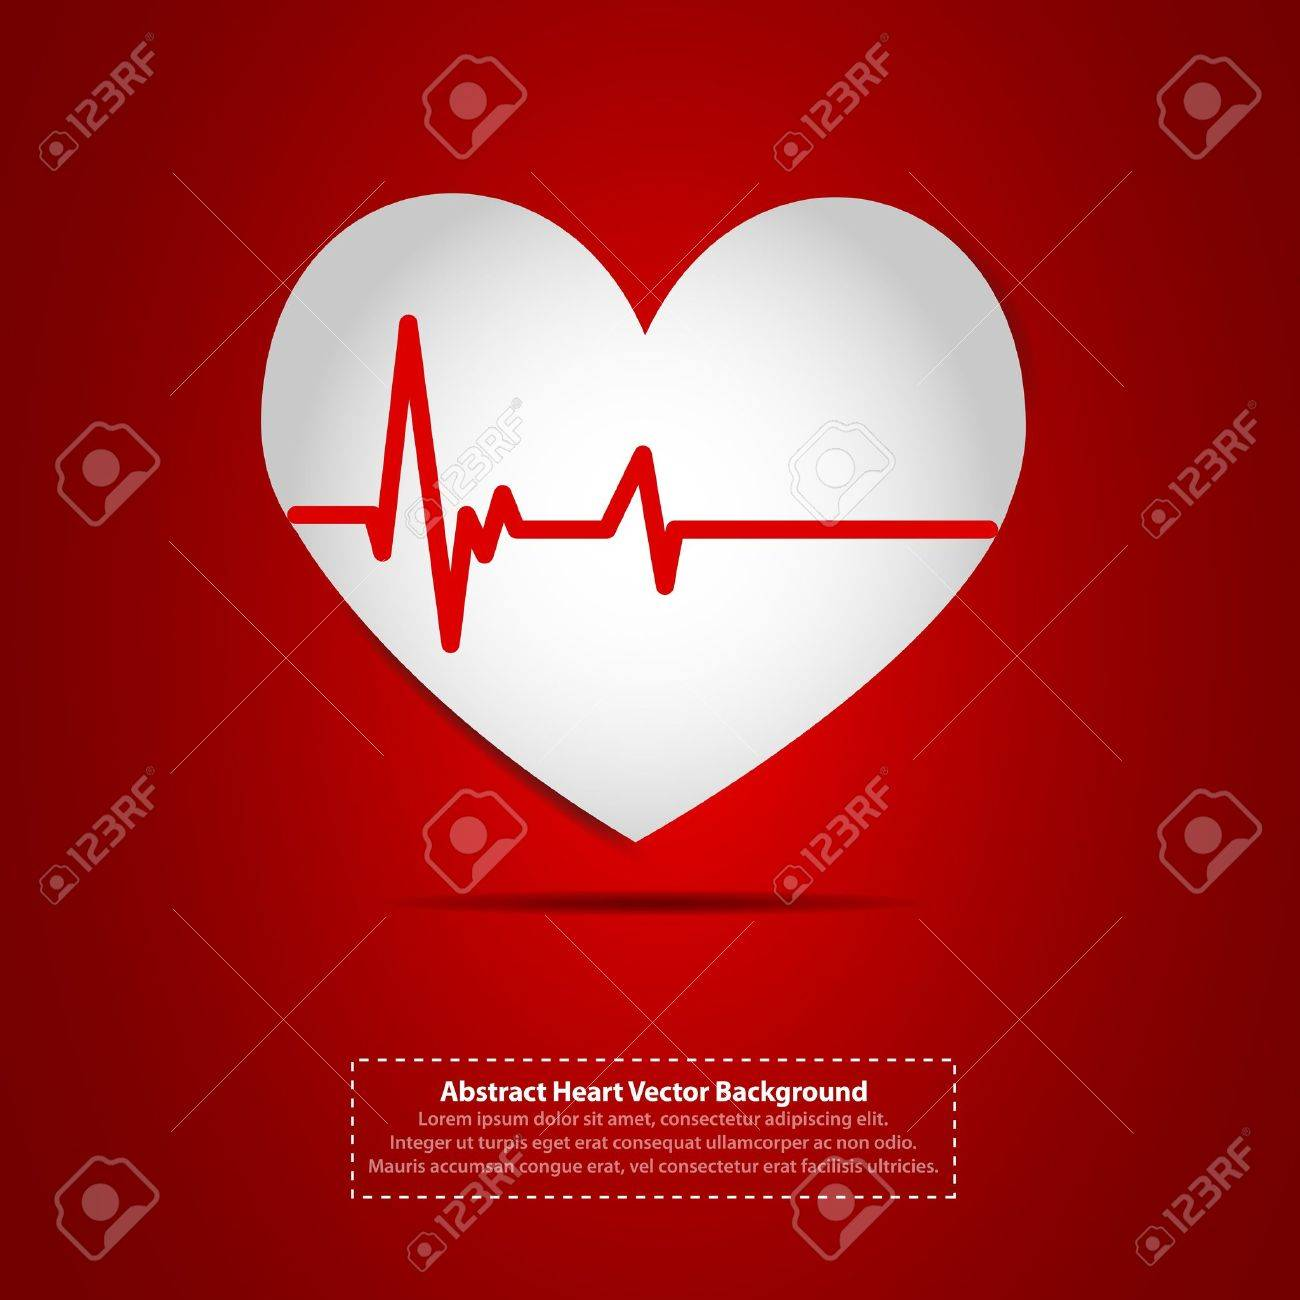 Heart with heartbeat symbol Stock Vector - 11849249